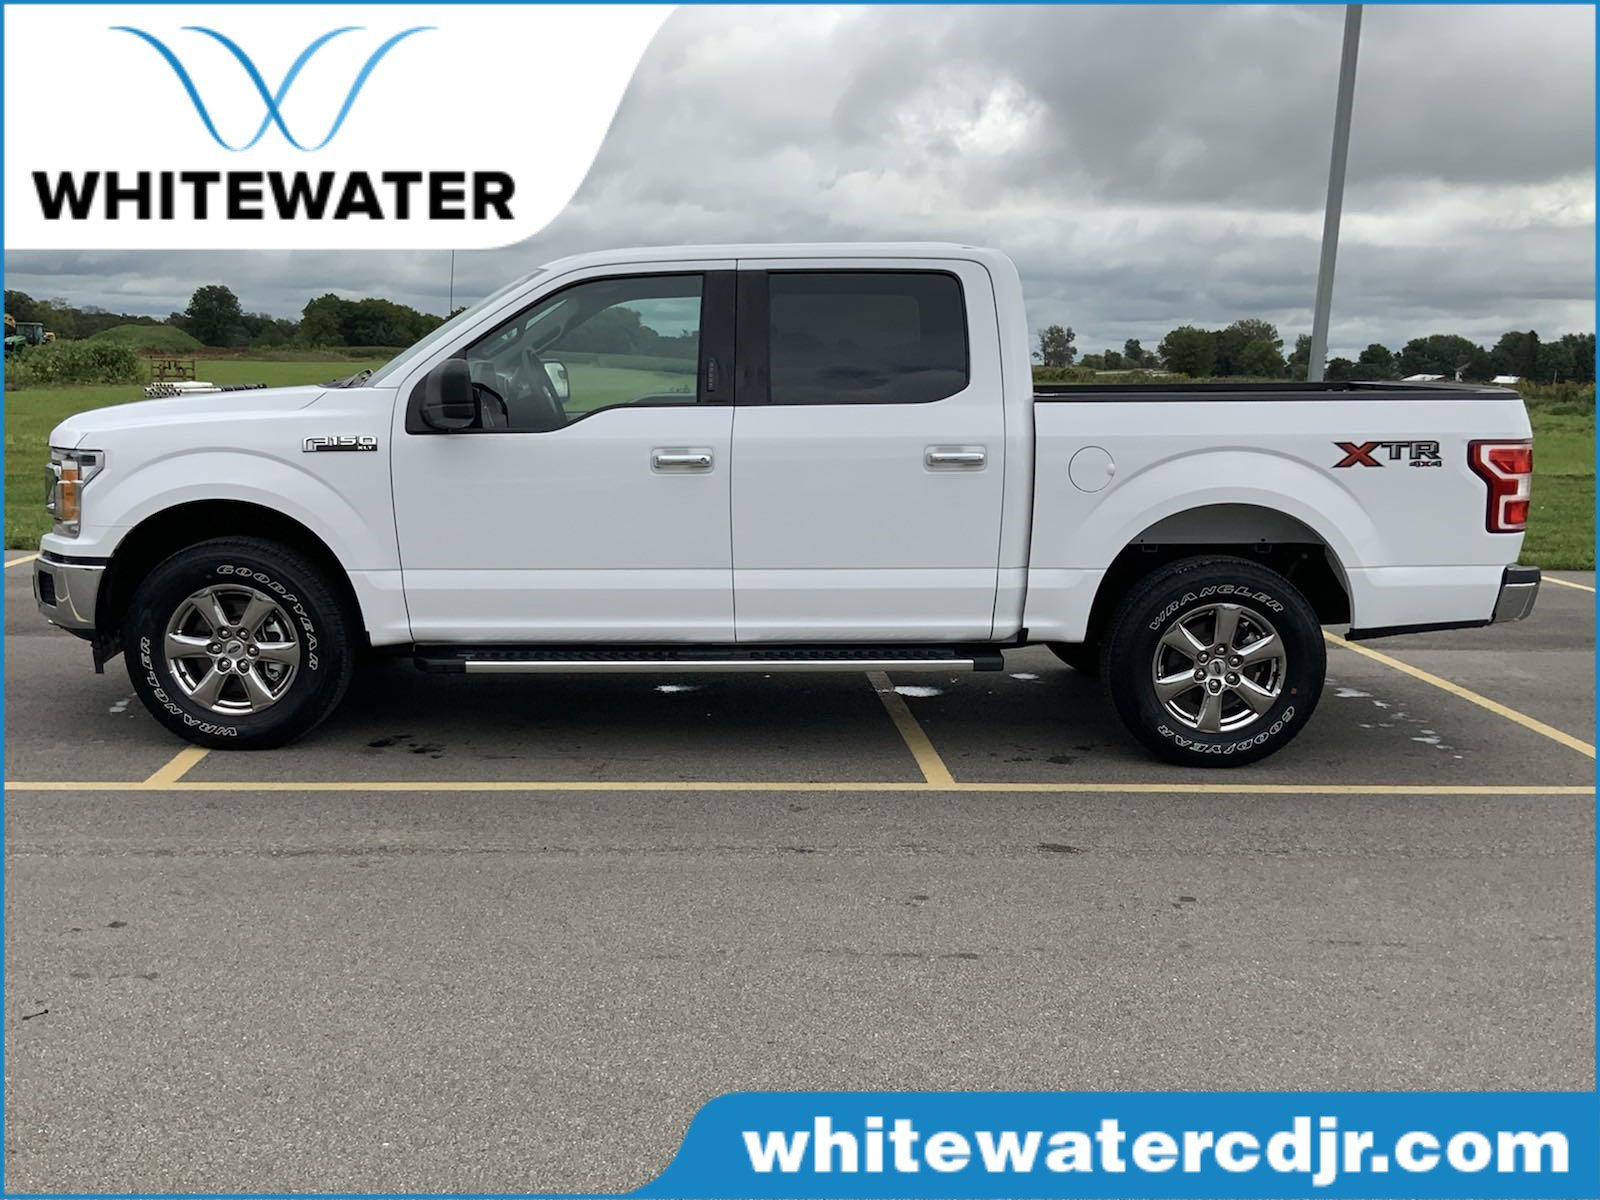 Used 2020 Ford F-150 XLT with VIN 1FTEW1EP1LKE50815 for sale in Saint Charles, Minnesota